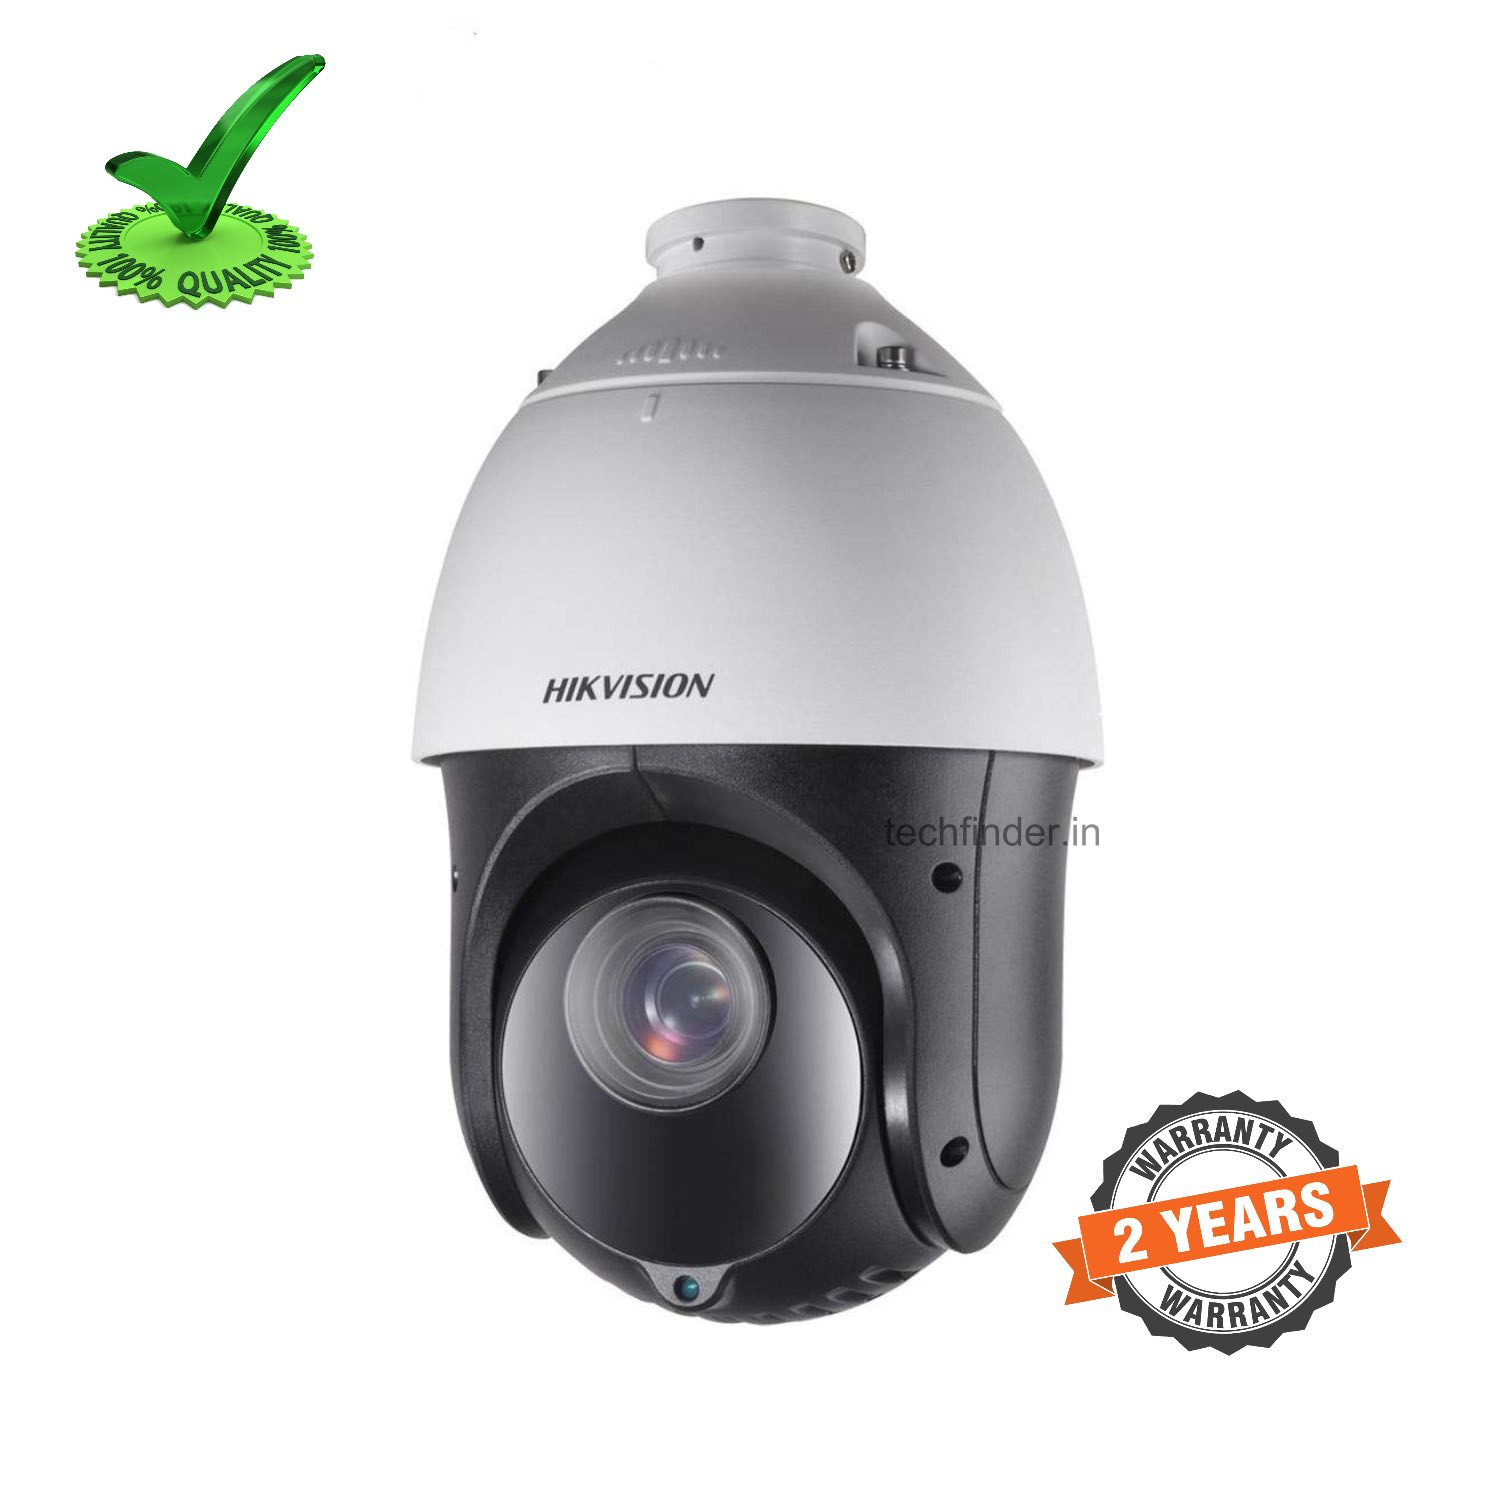 Hikvision DS-2AE4123TI-D PTZ 23x 720p outdoor IR Speed Dome Camera